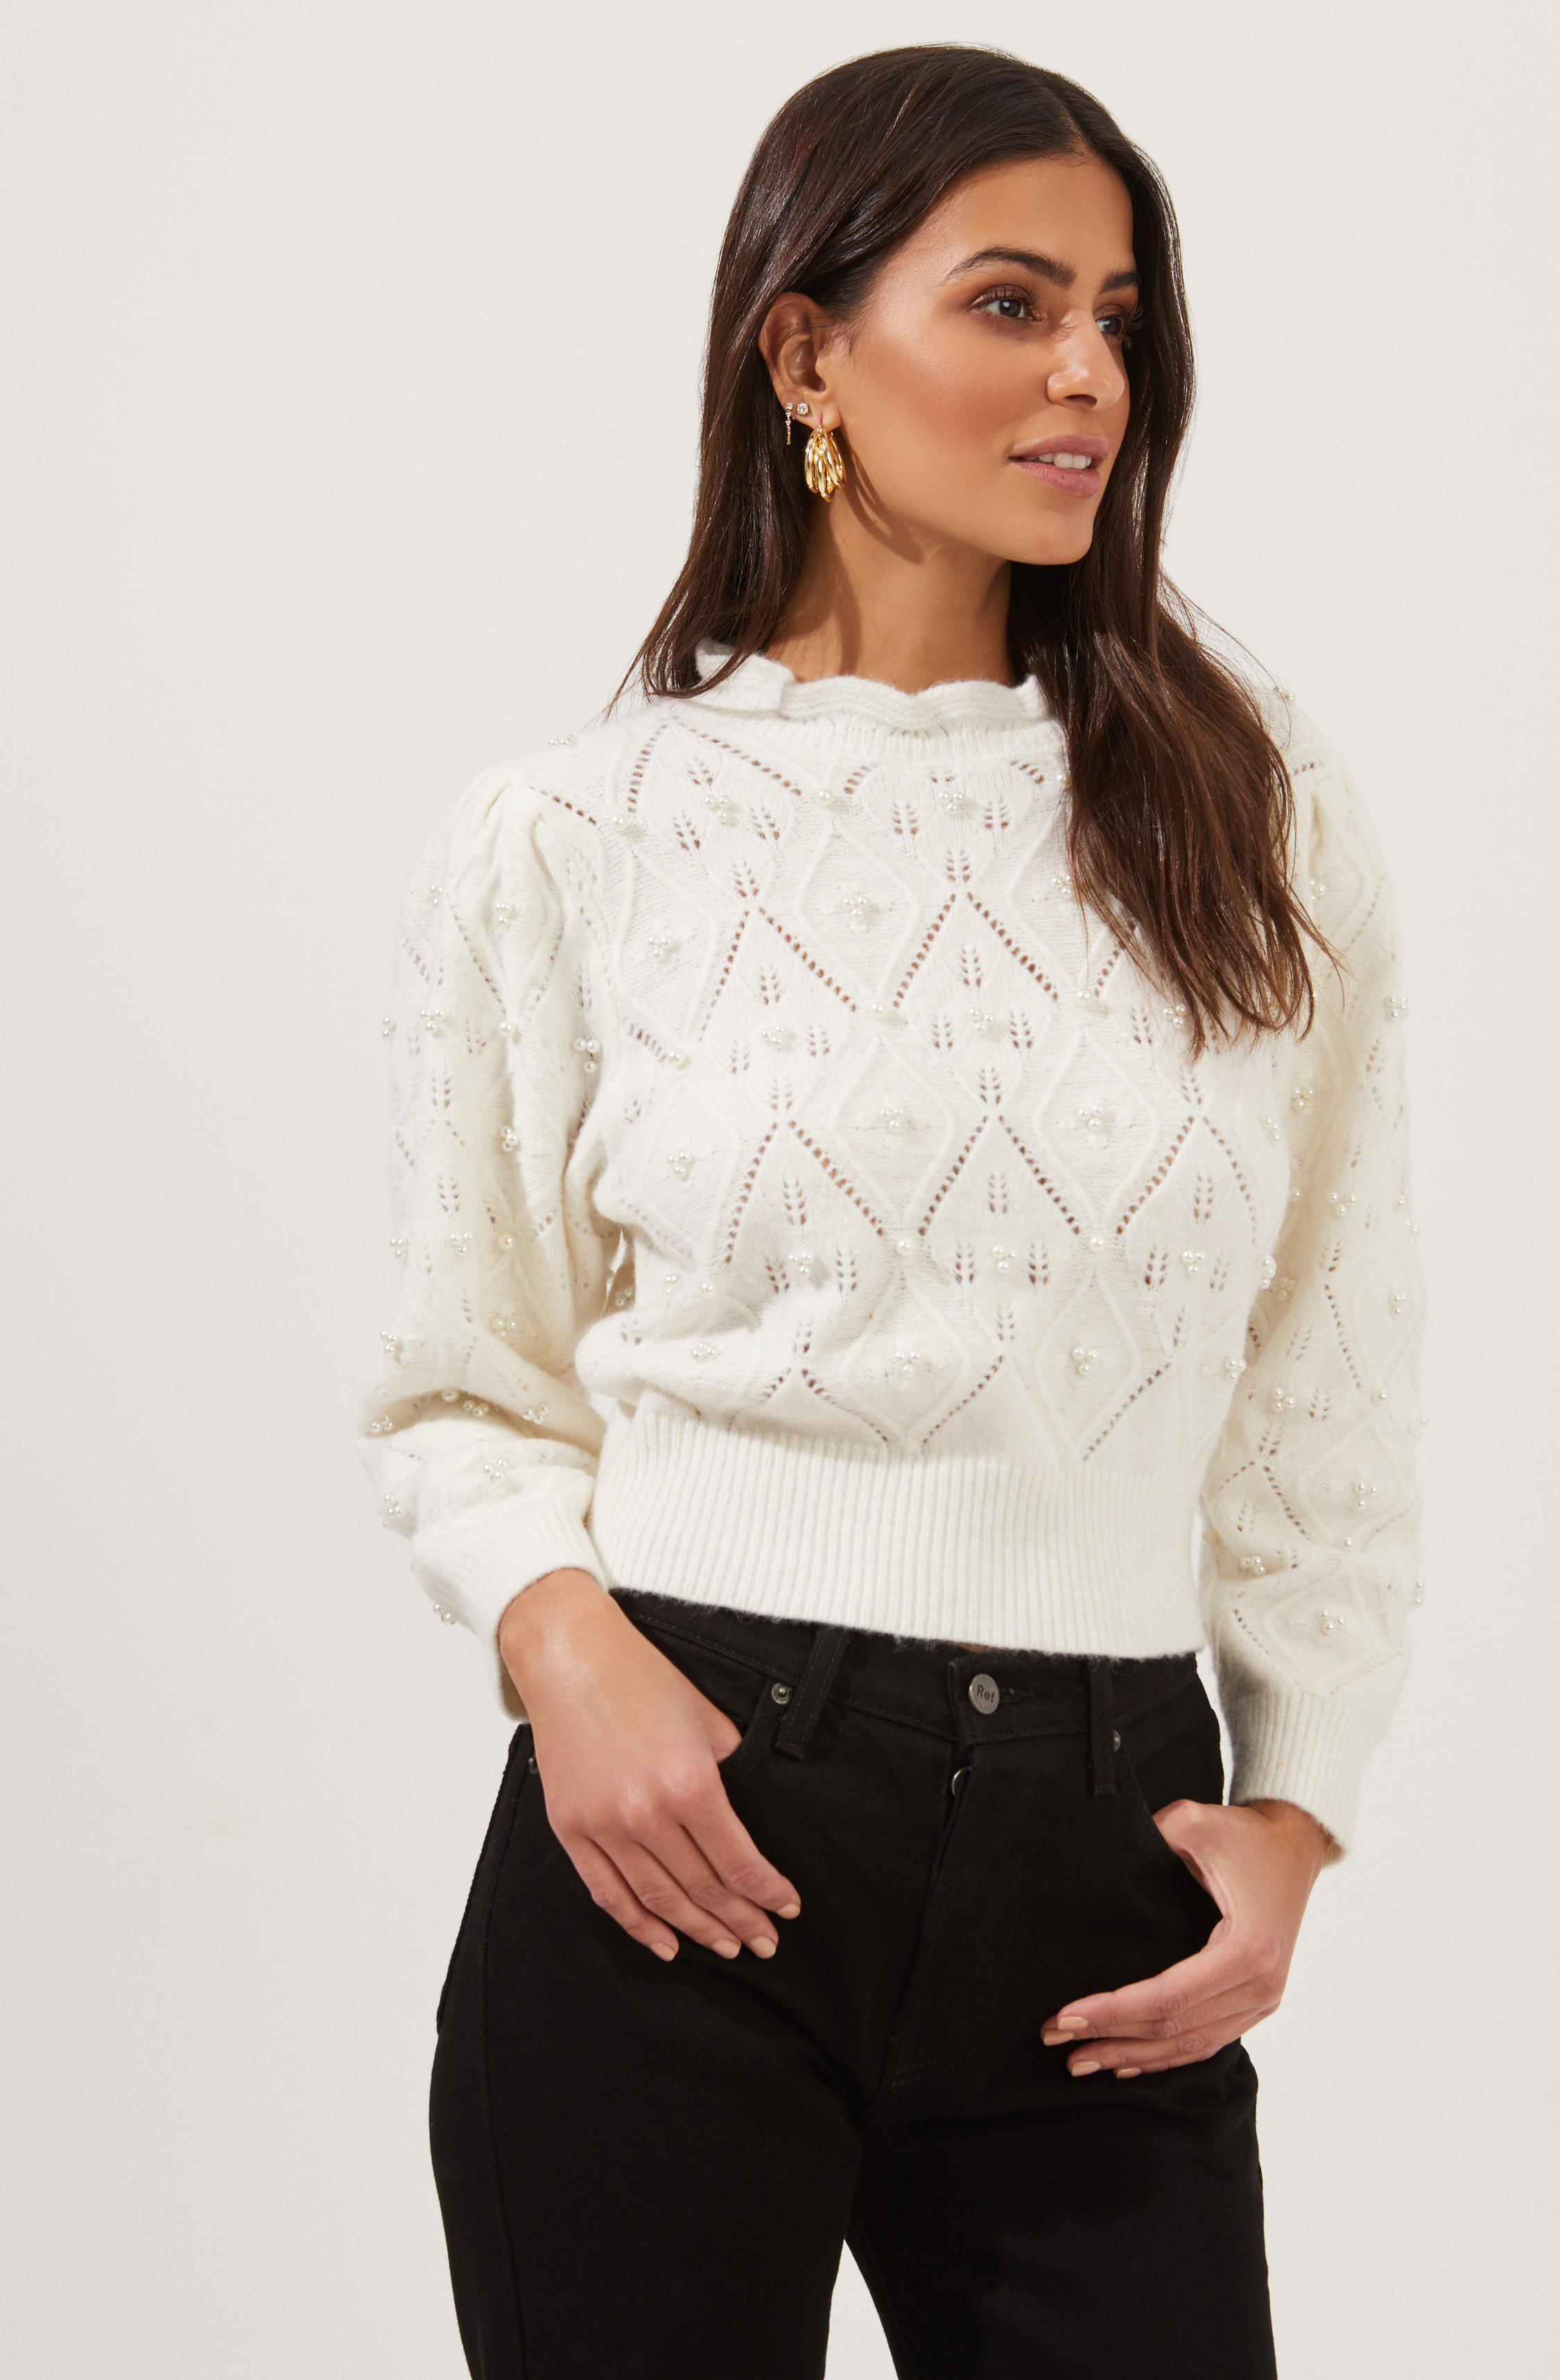 Taya Pearl Embellished Pointelle Frill Neck Sweater